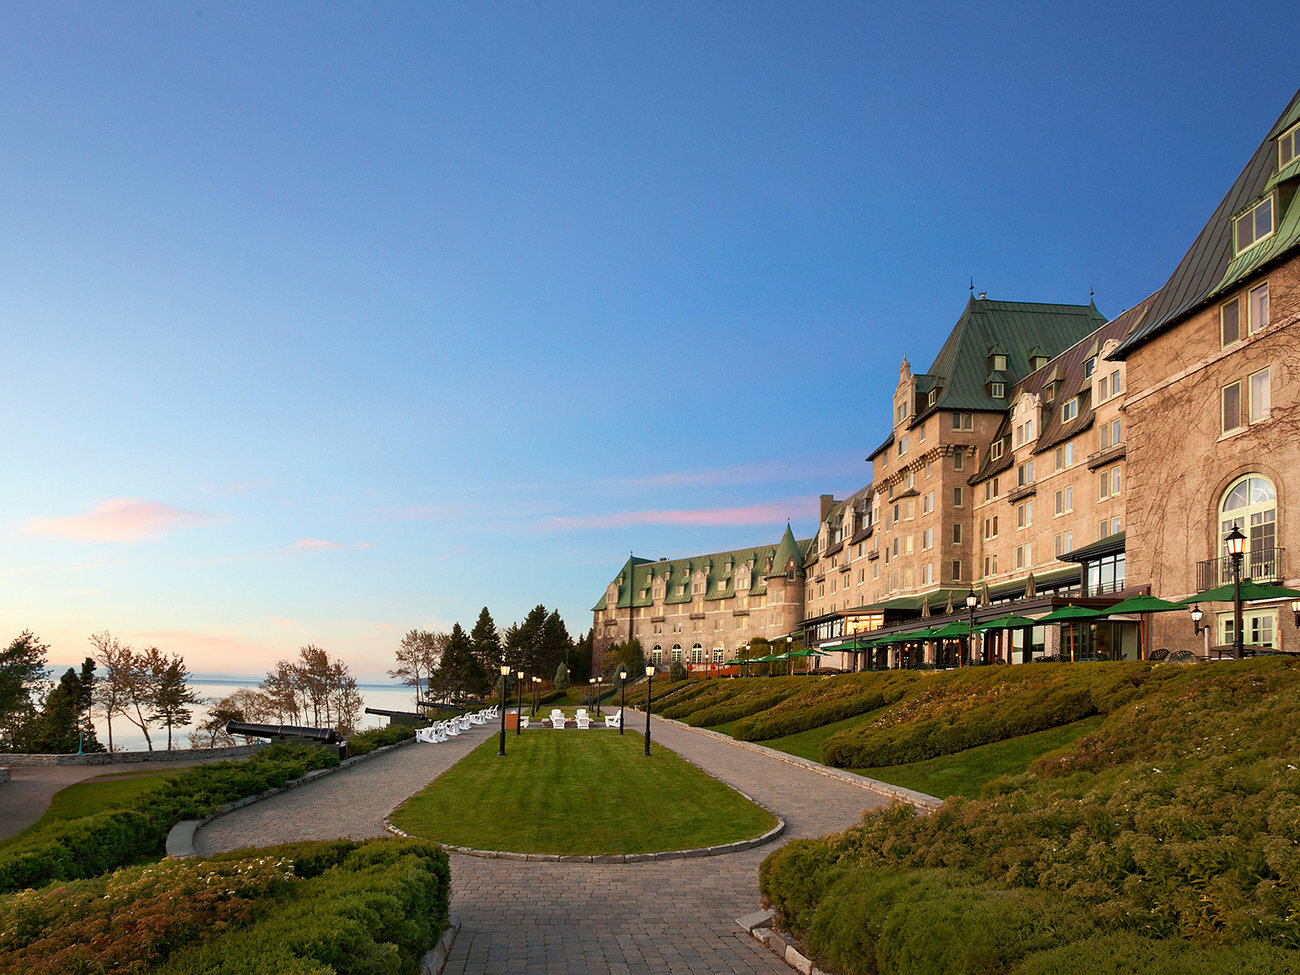 Fairmont Le Chateau Frontenac Hotel in Quebec City